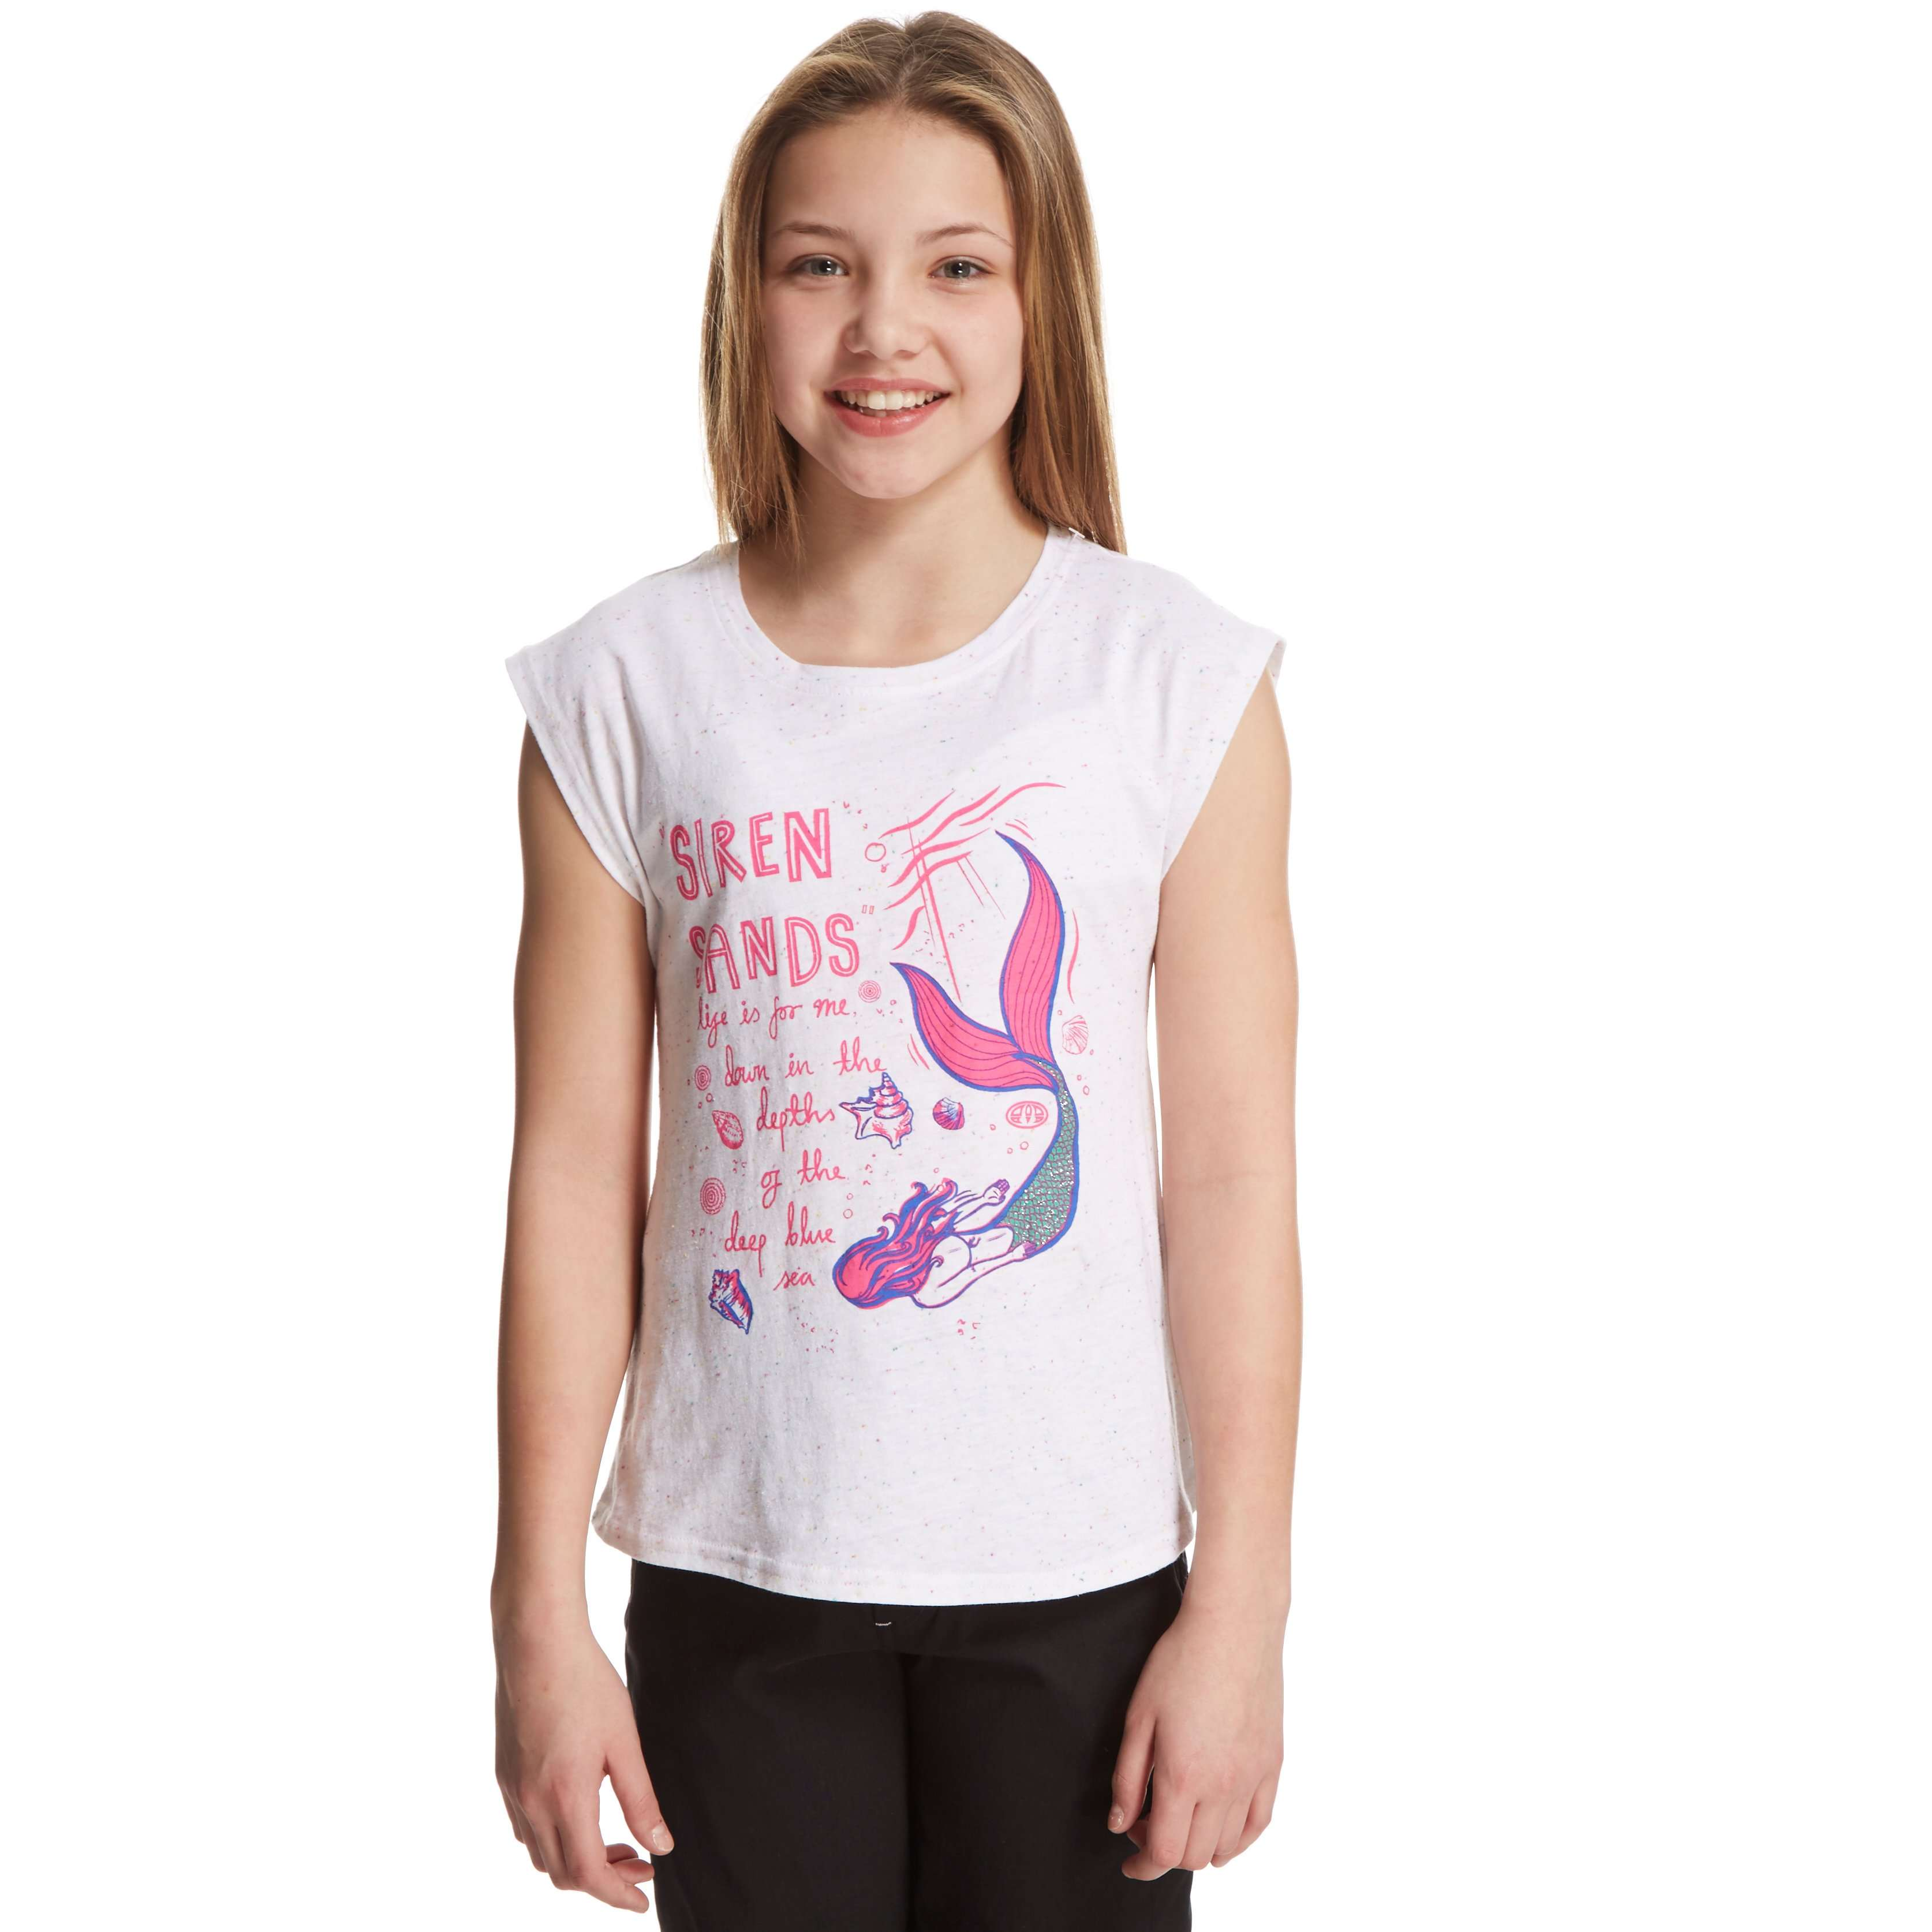 ANIMAL Girls' Siren Sands T-Shirt